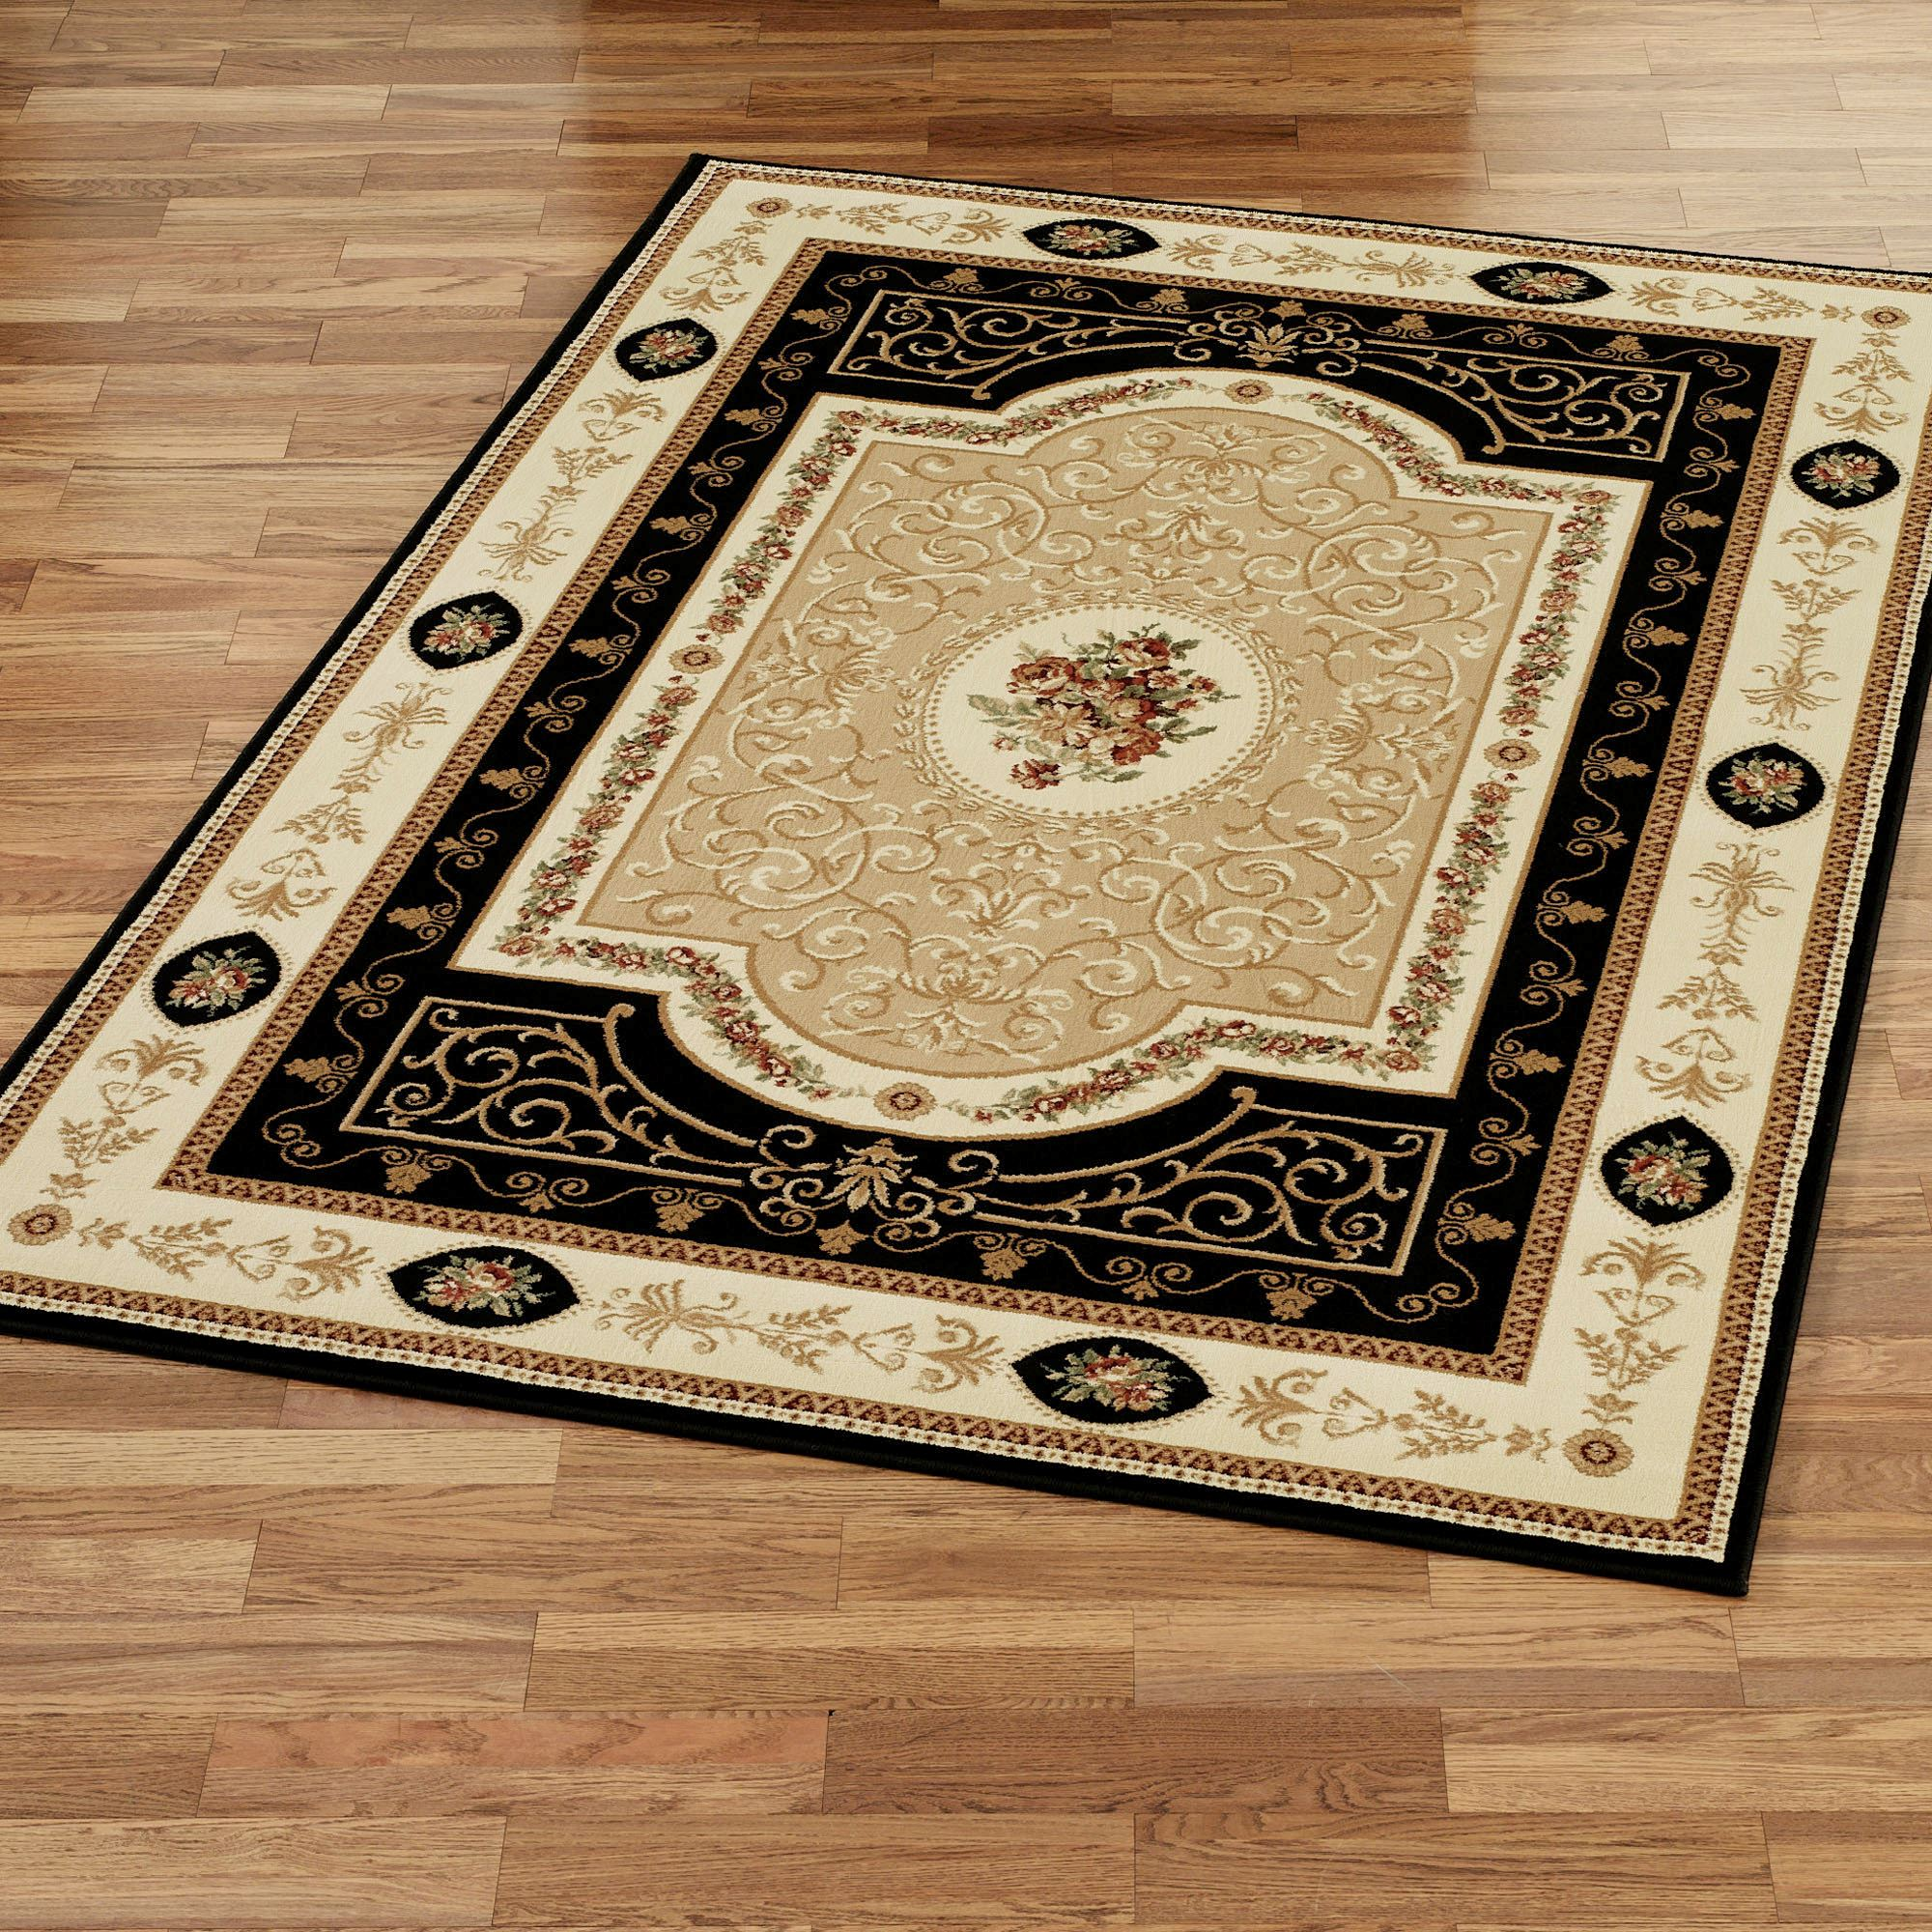 Mesmerizing Aubusson Rugs | Cozy Antique French Rugs